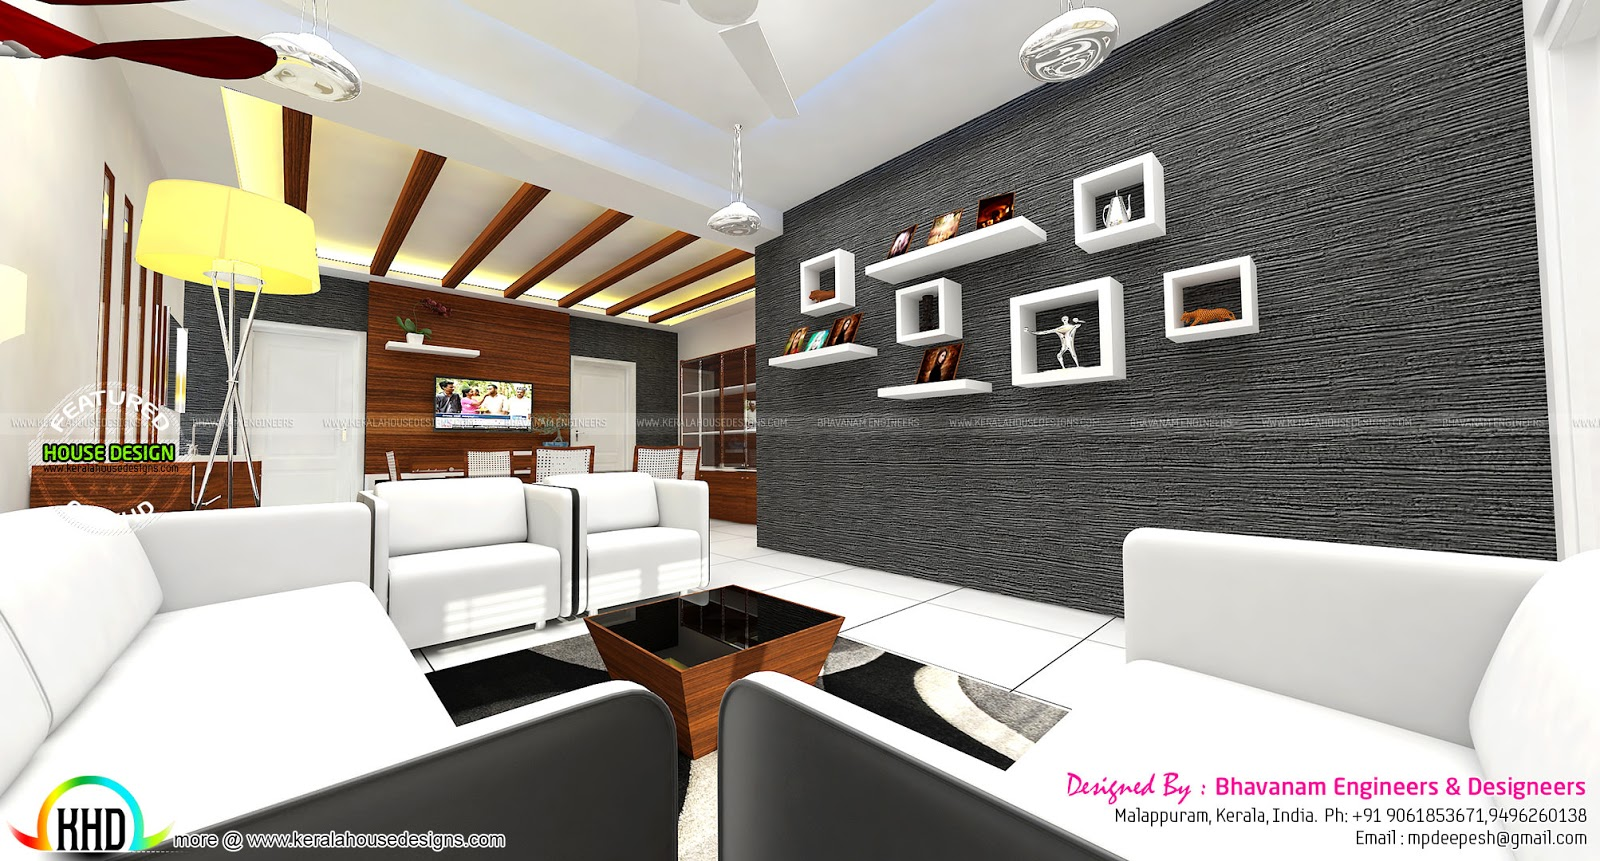 Living room interior decors ideas kerala home design and for House interior design nagercoil